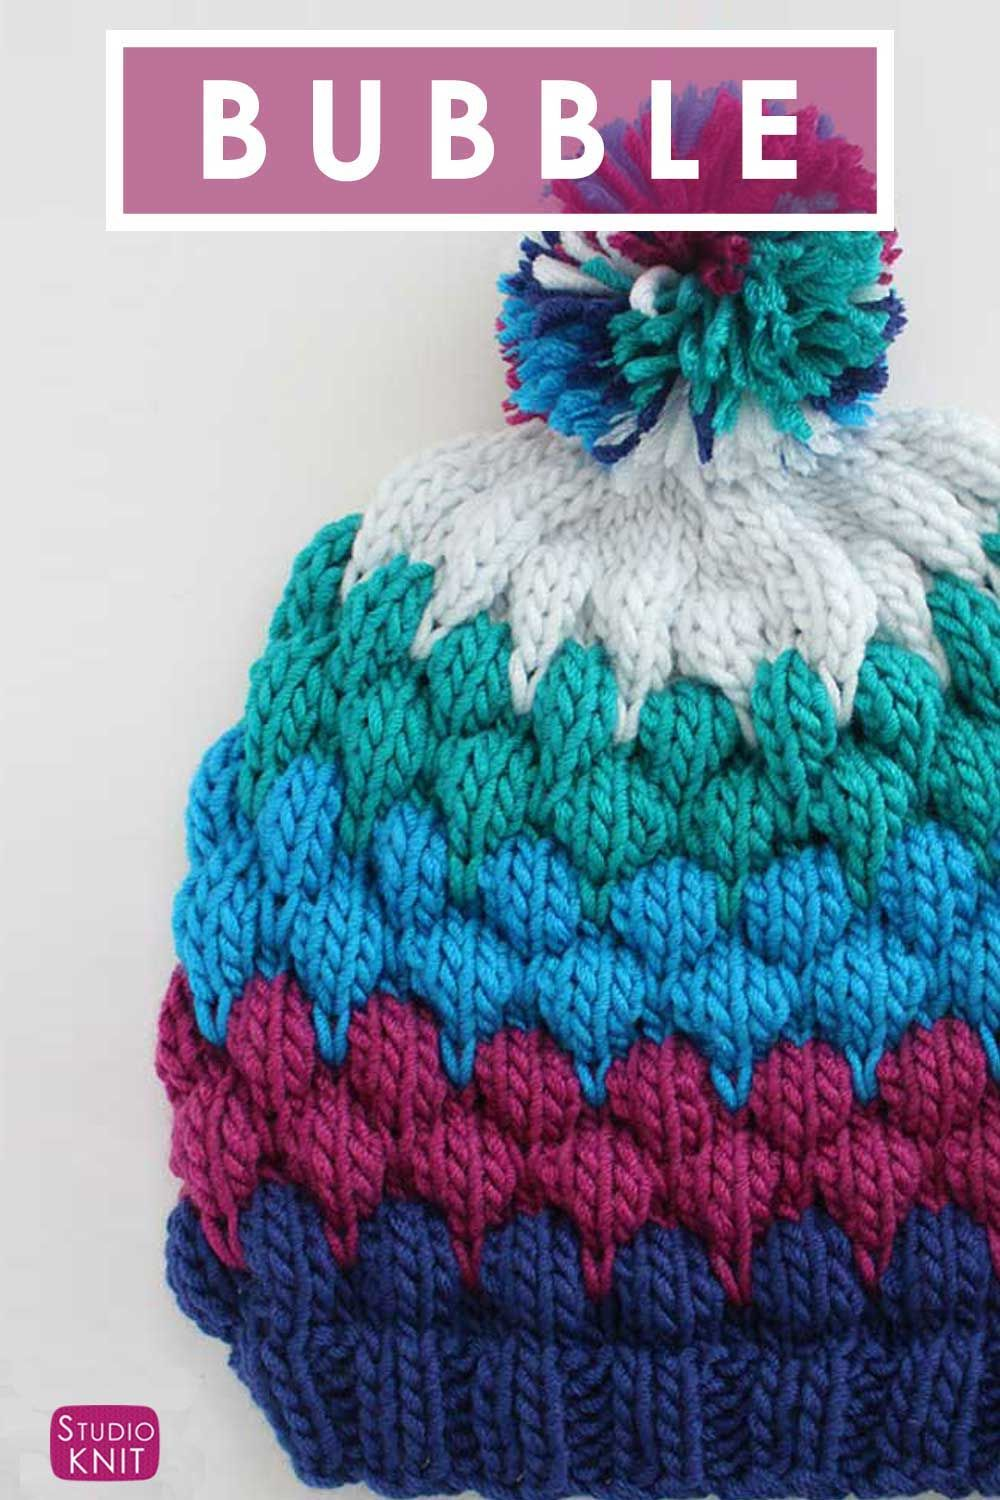 New popular Bubble Stitch Beanie Hat with free Knitting Pattern and video  tutorial by Studio Knit.  knithat  StudioKnit  bubblebeanie  bubblehat   ... 43a45e20b16